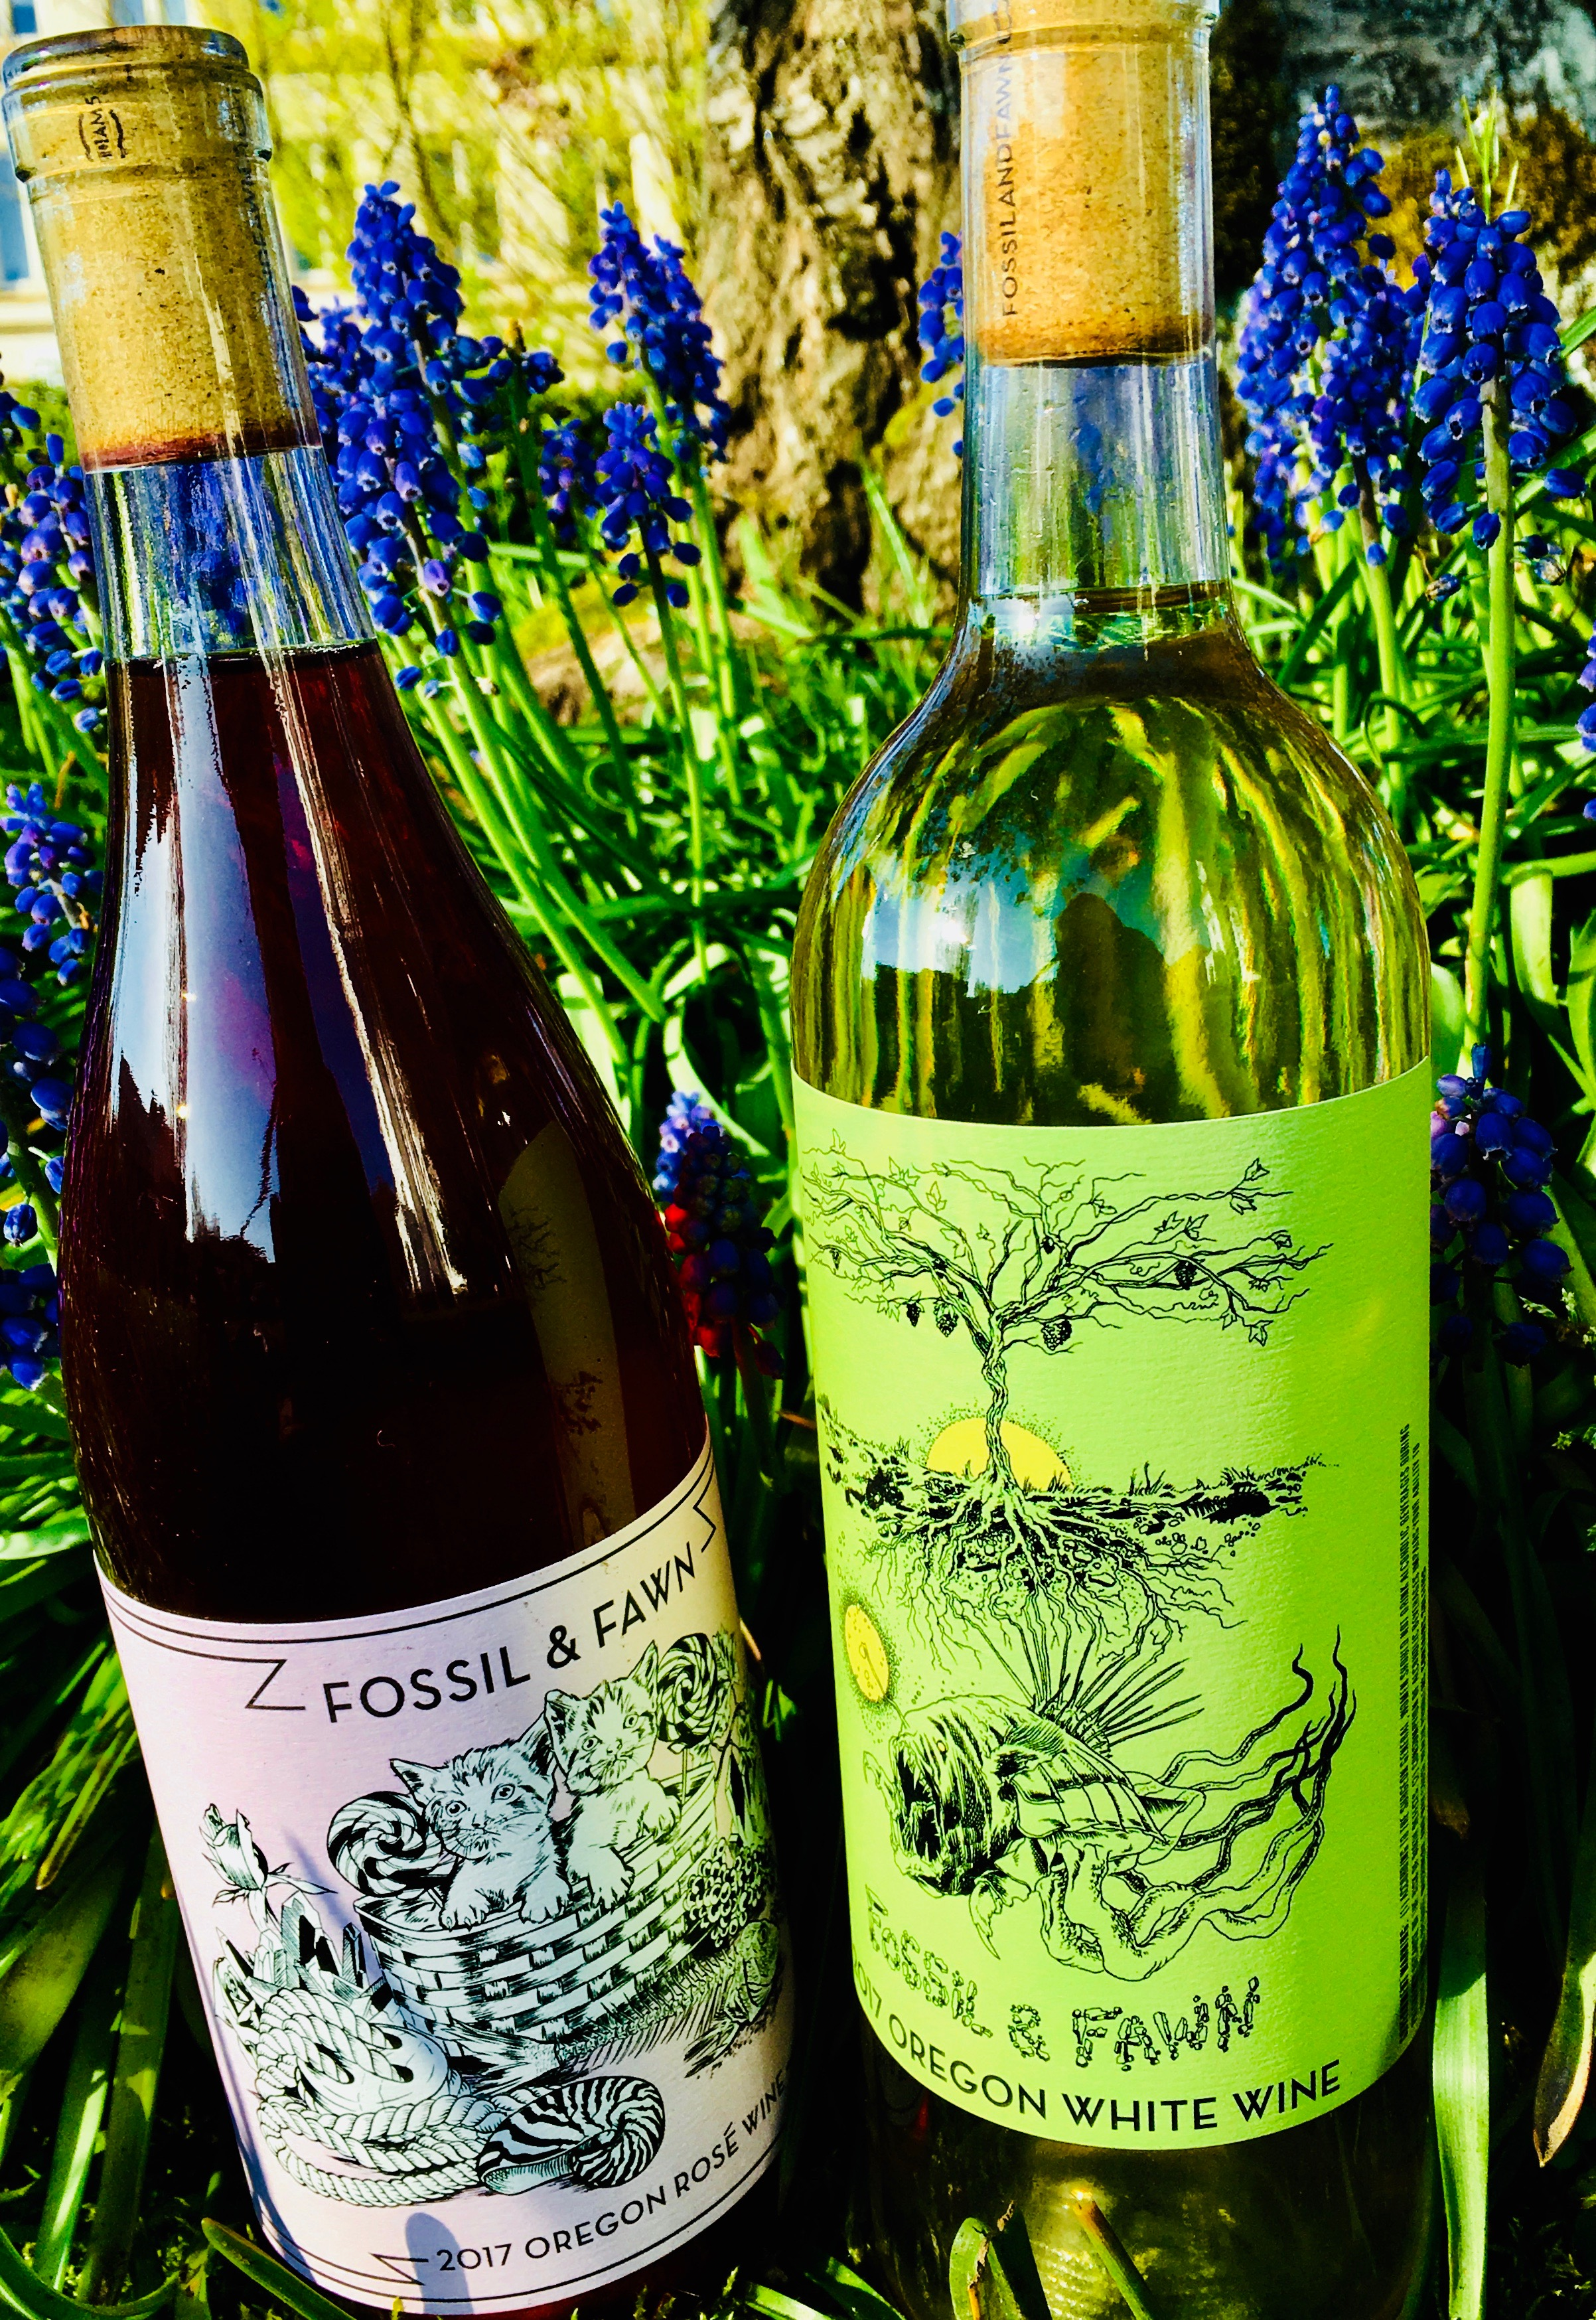 - Fossil and Fawns very dark rose of pinot noir and their eclectic Oregon white blend composed of 50% Riesling, 20% Savagnin Rose, 15% Gewürztraminer, 6% Fruilano, 6% Melon de Bourgogne, 3% Kerner